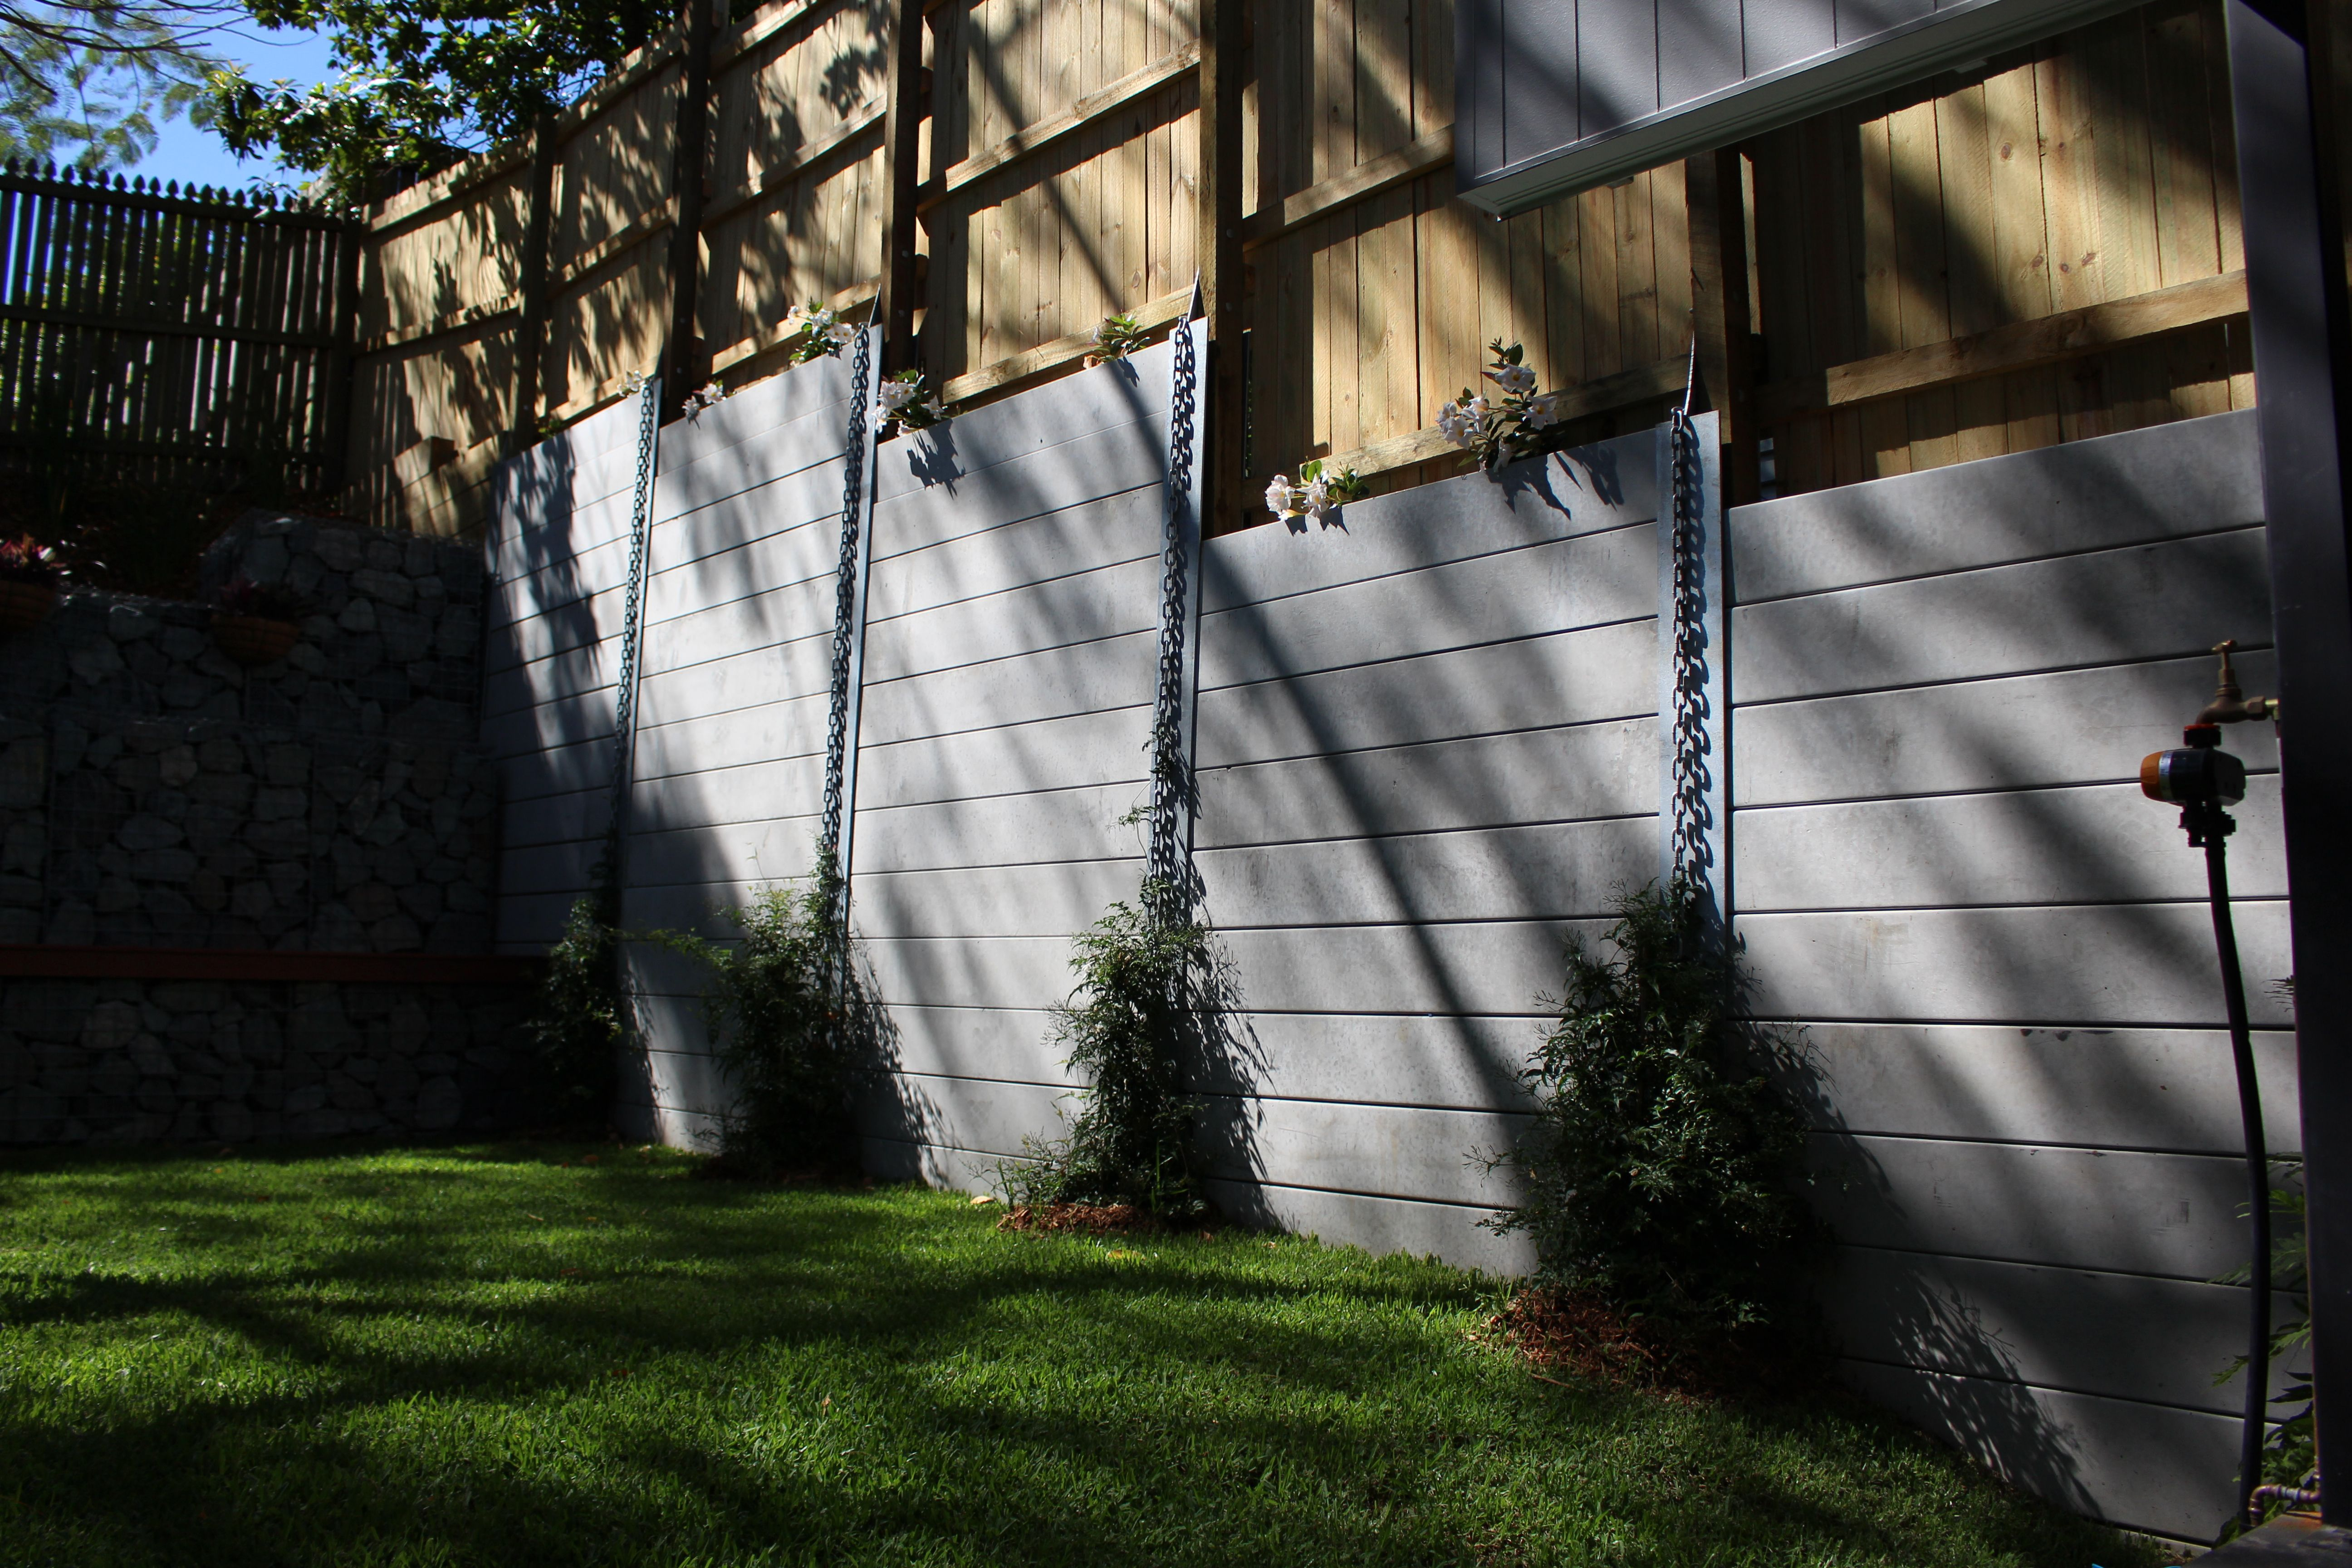 Pioneer Smooth Grey Concrete Sleeper Retaining Wall Call Today For A Quote On Supply Or Sleeper Retaining Wall Concrete Sleeper Retaining Walls Retaining Wall